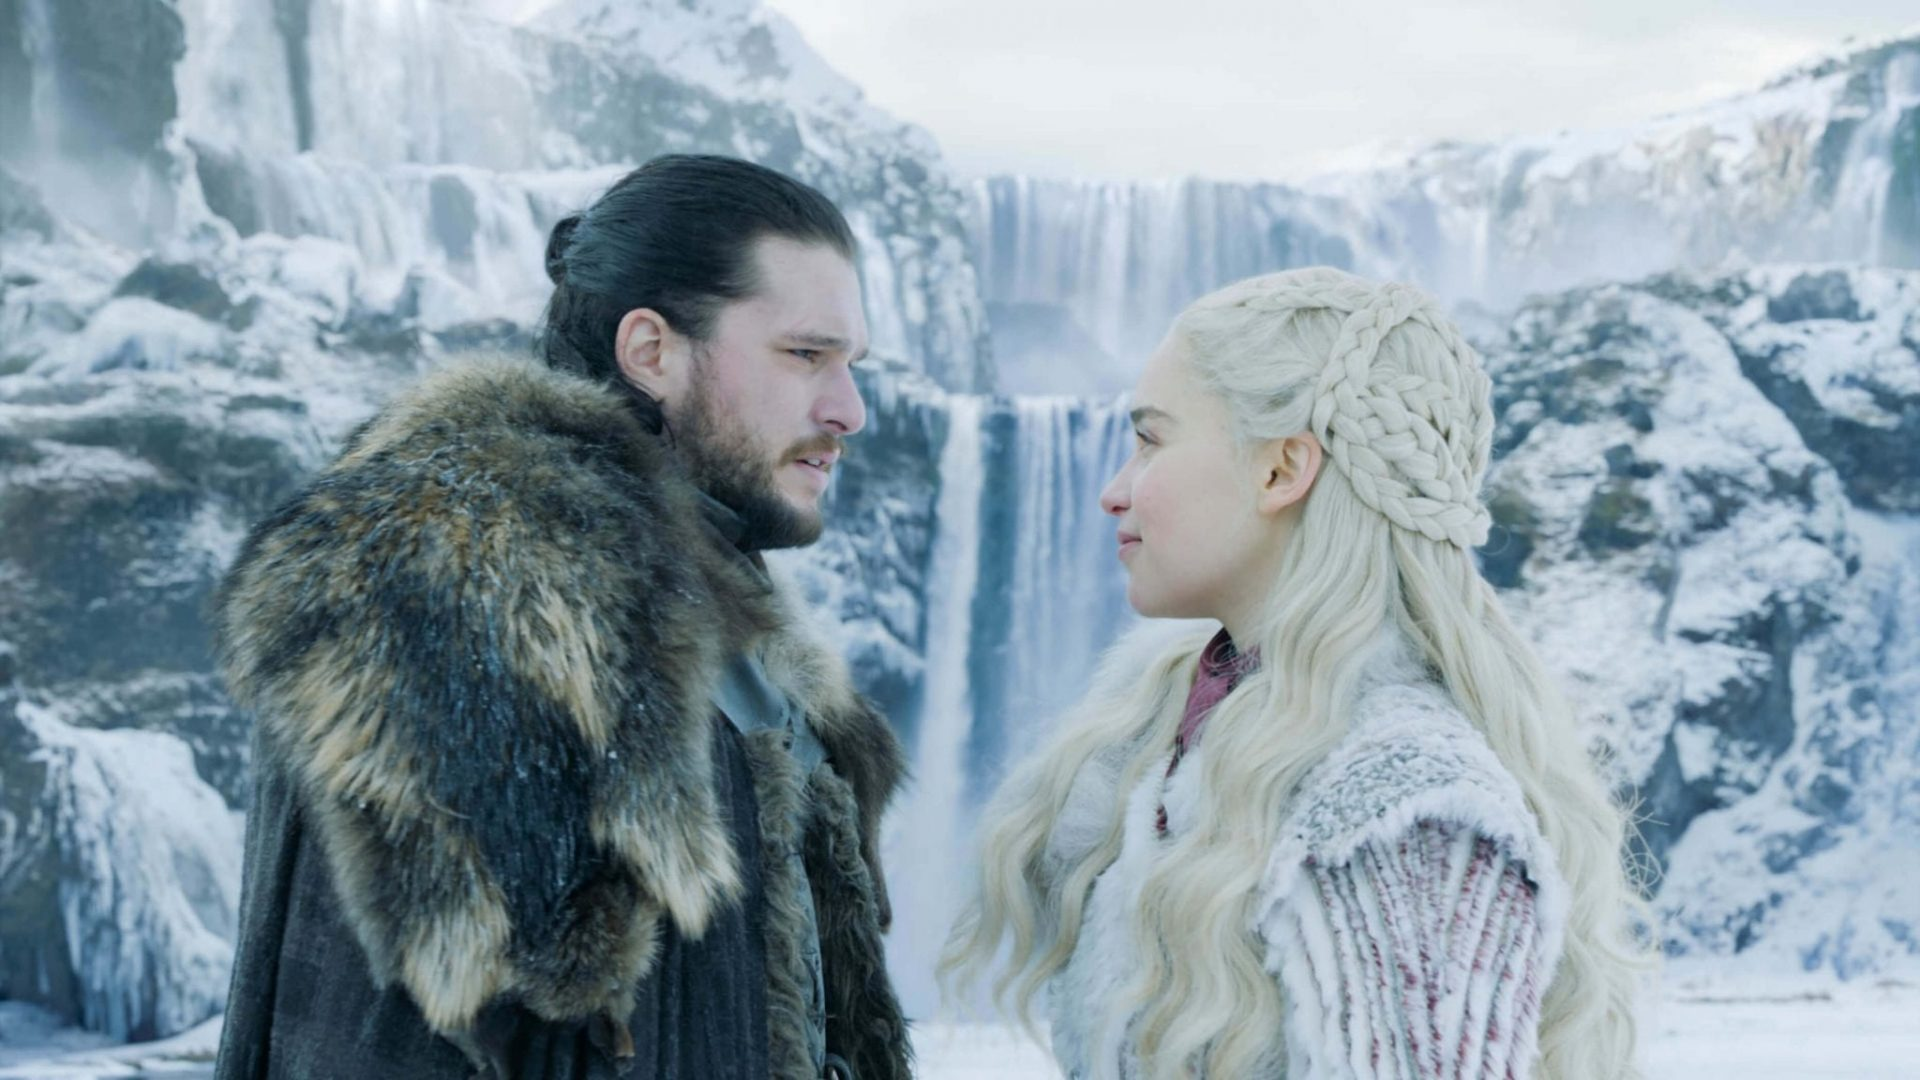 Jon snow e daenerys targaryen no primeiro ep. De game of thrones